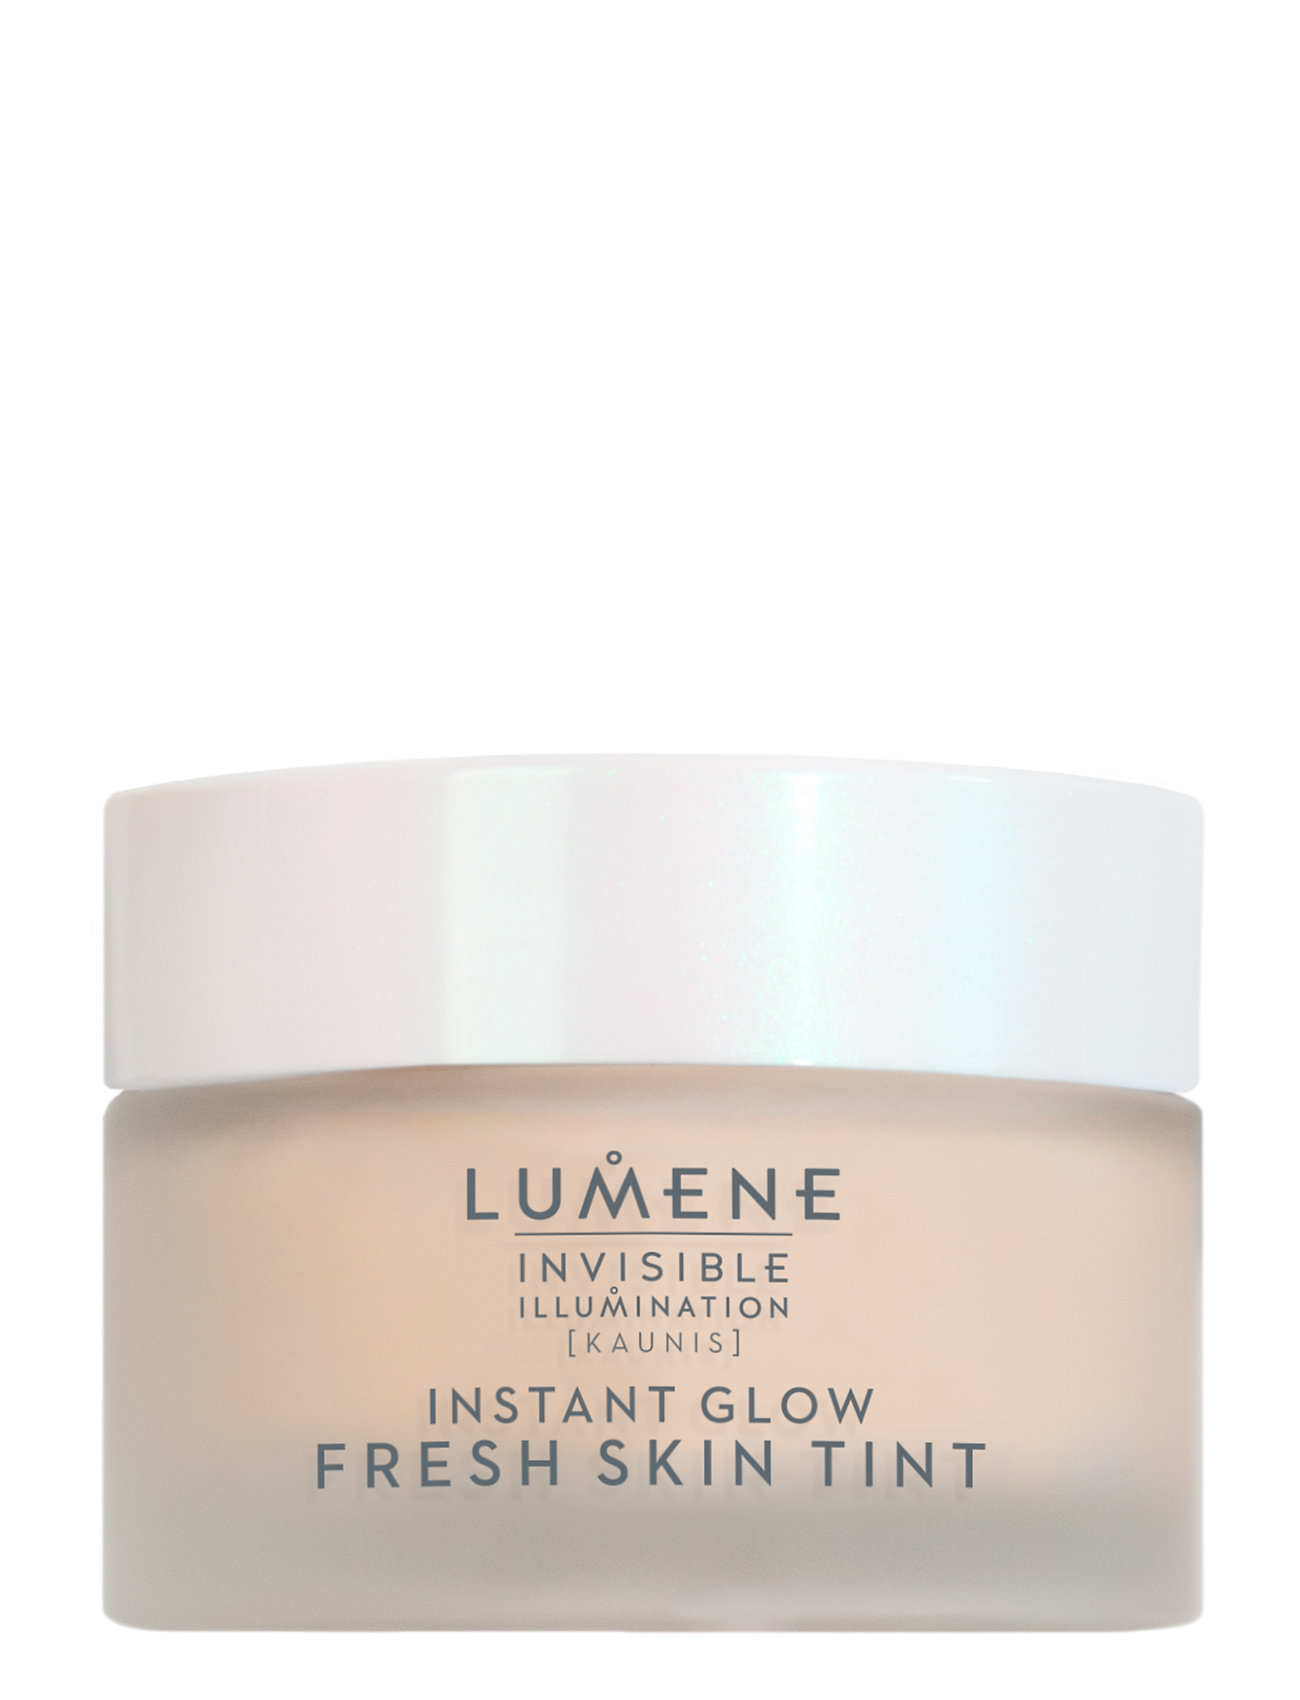 Image of Invisible Illumination Instant Glow Fresh Skin Tint Beauty WOMEN Skin Care Face Day Creams LUMENE (3174046451)